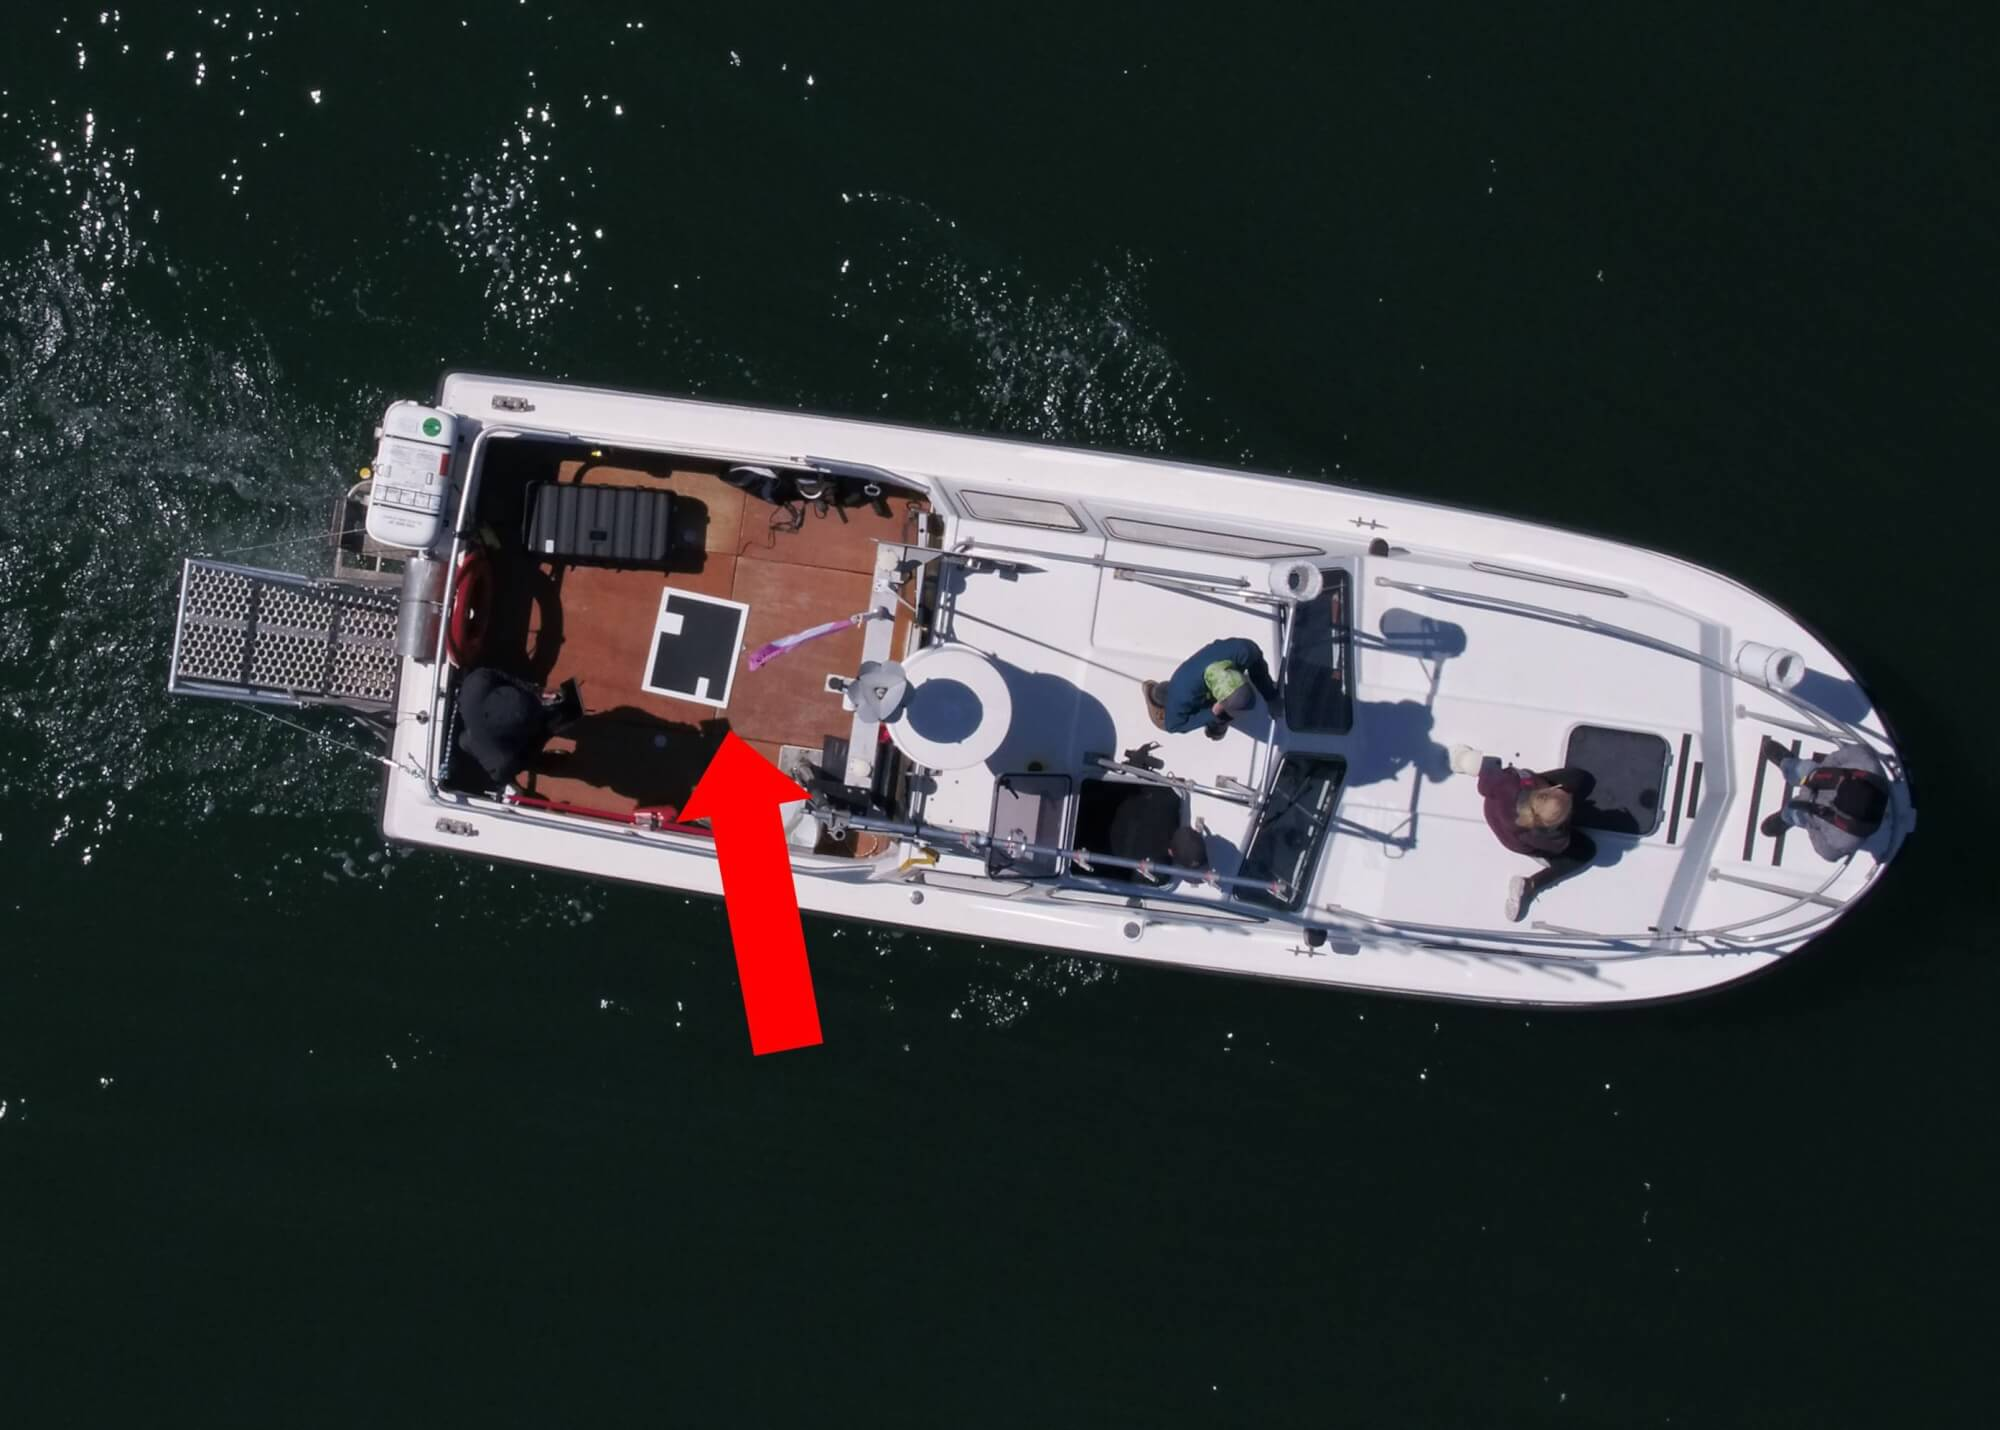 Aerial view of the research ship, with black cardboard and white square on it